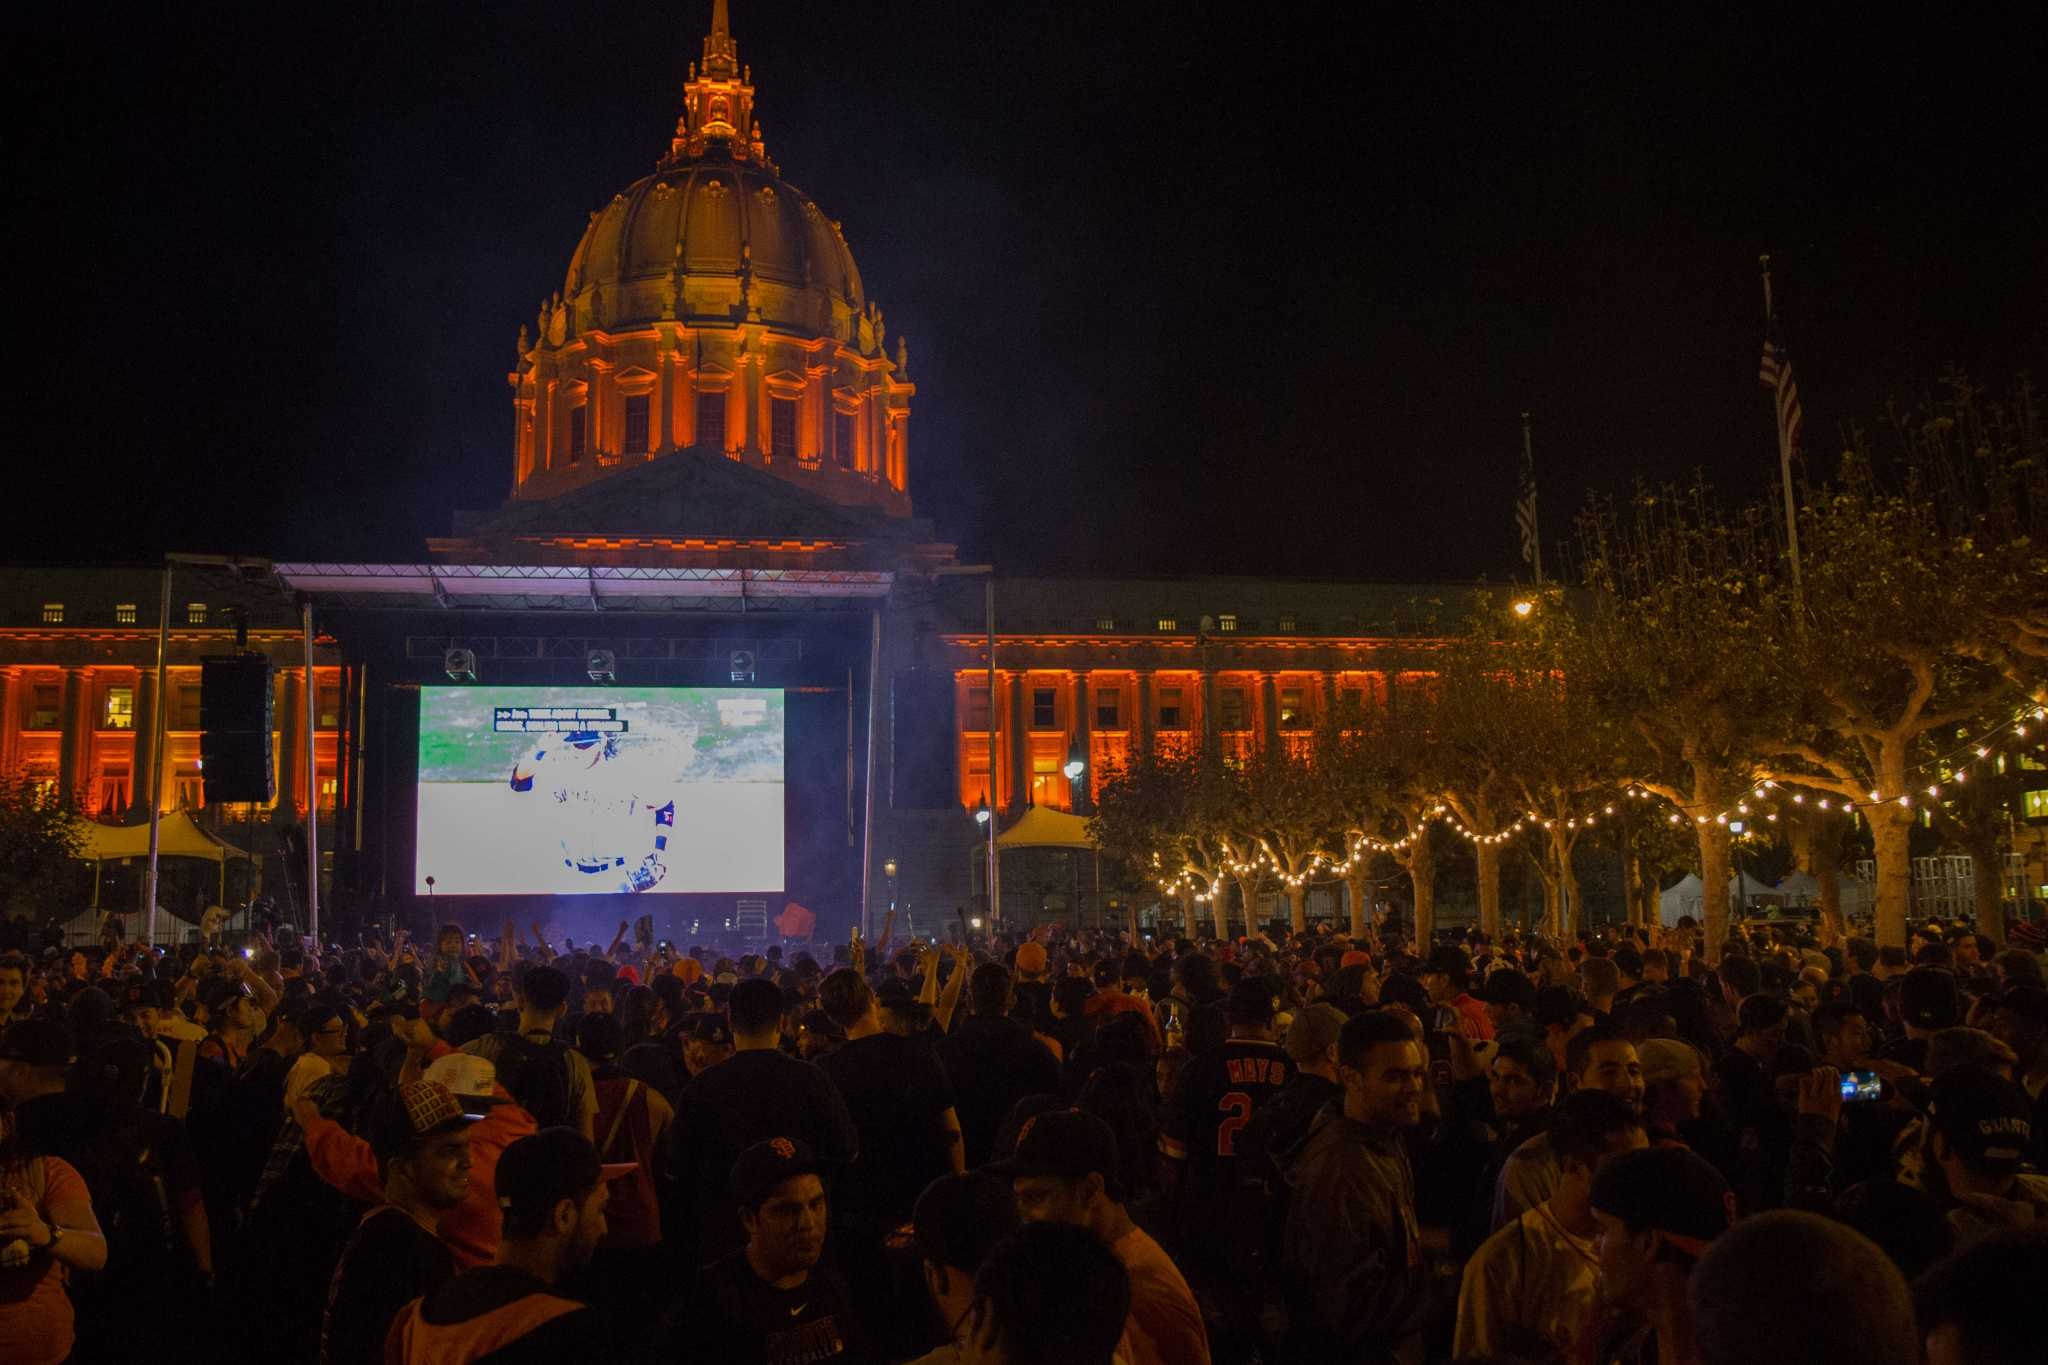 A city of success: Giants take home third World Series in five years